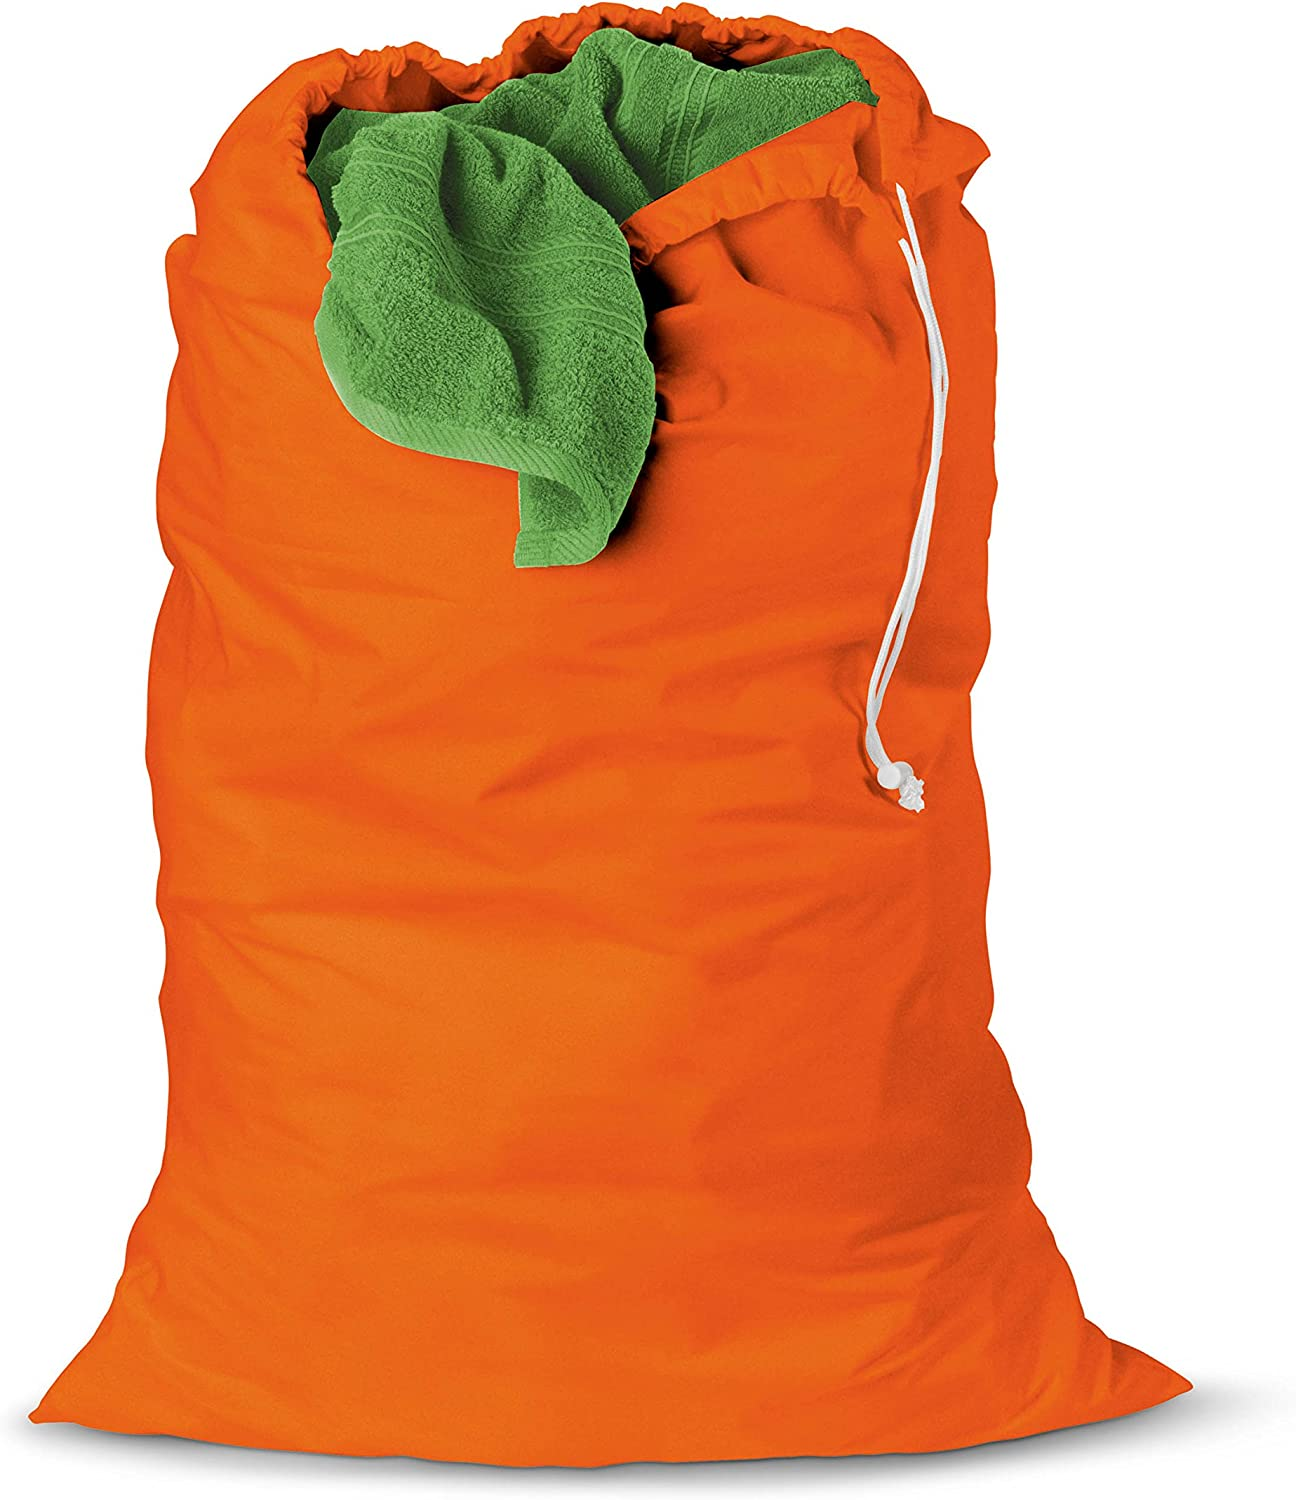 Honey-Can-Do LBG-01165 Cotton Laundry Bag with Drawstring, Orange, 24-inches L x 36-Inches H